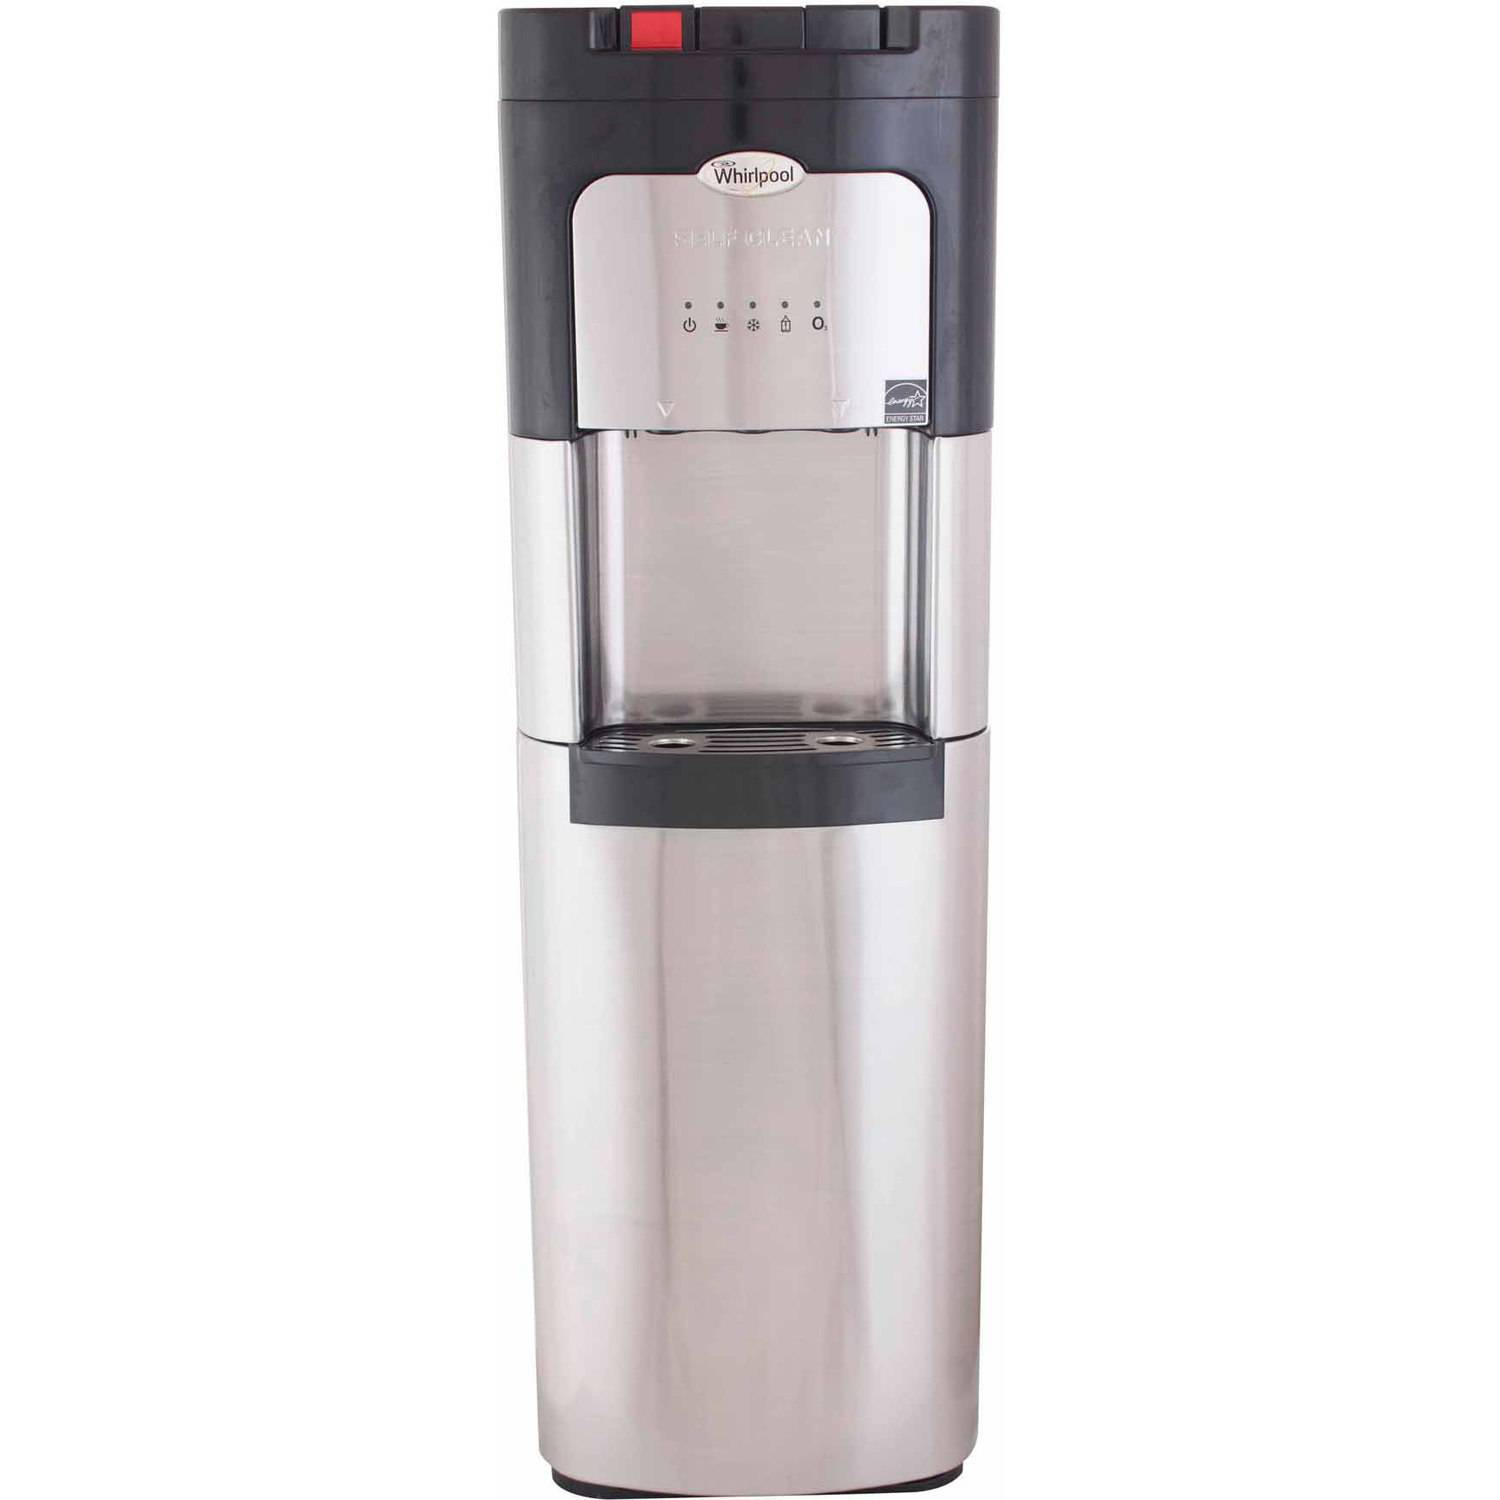 whirlpool stainless steel bottomload water dispenser water cooler with self clean and 5